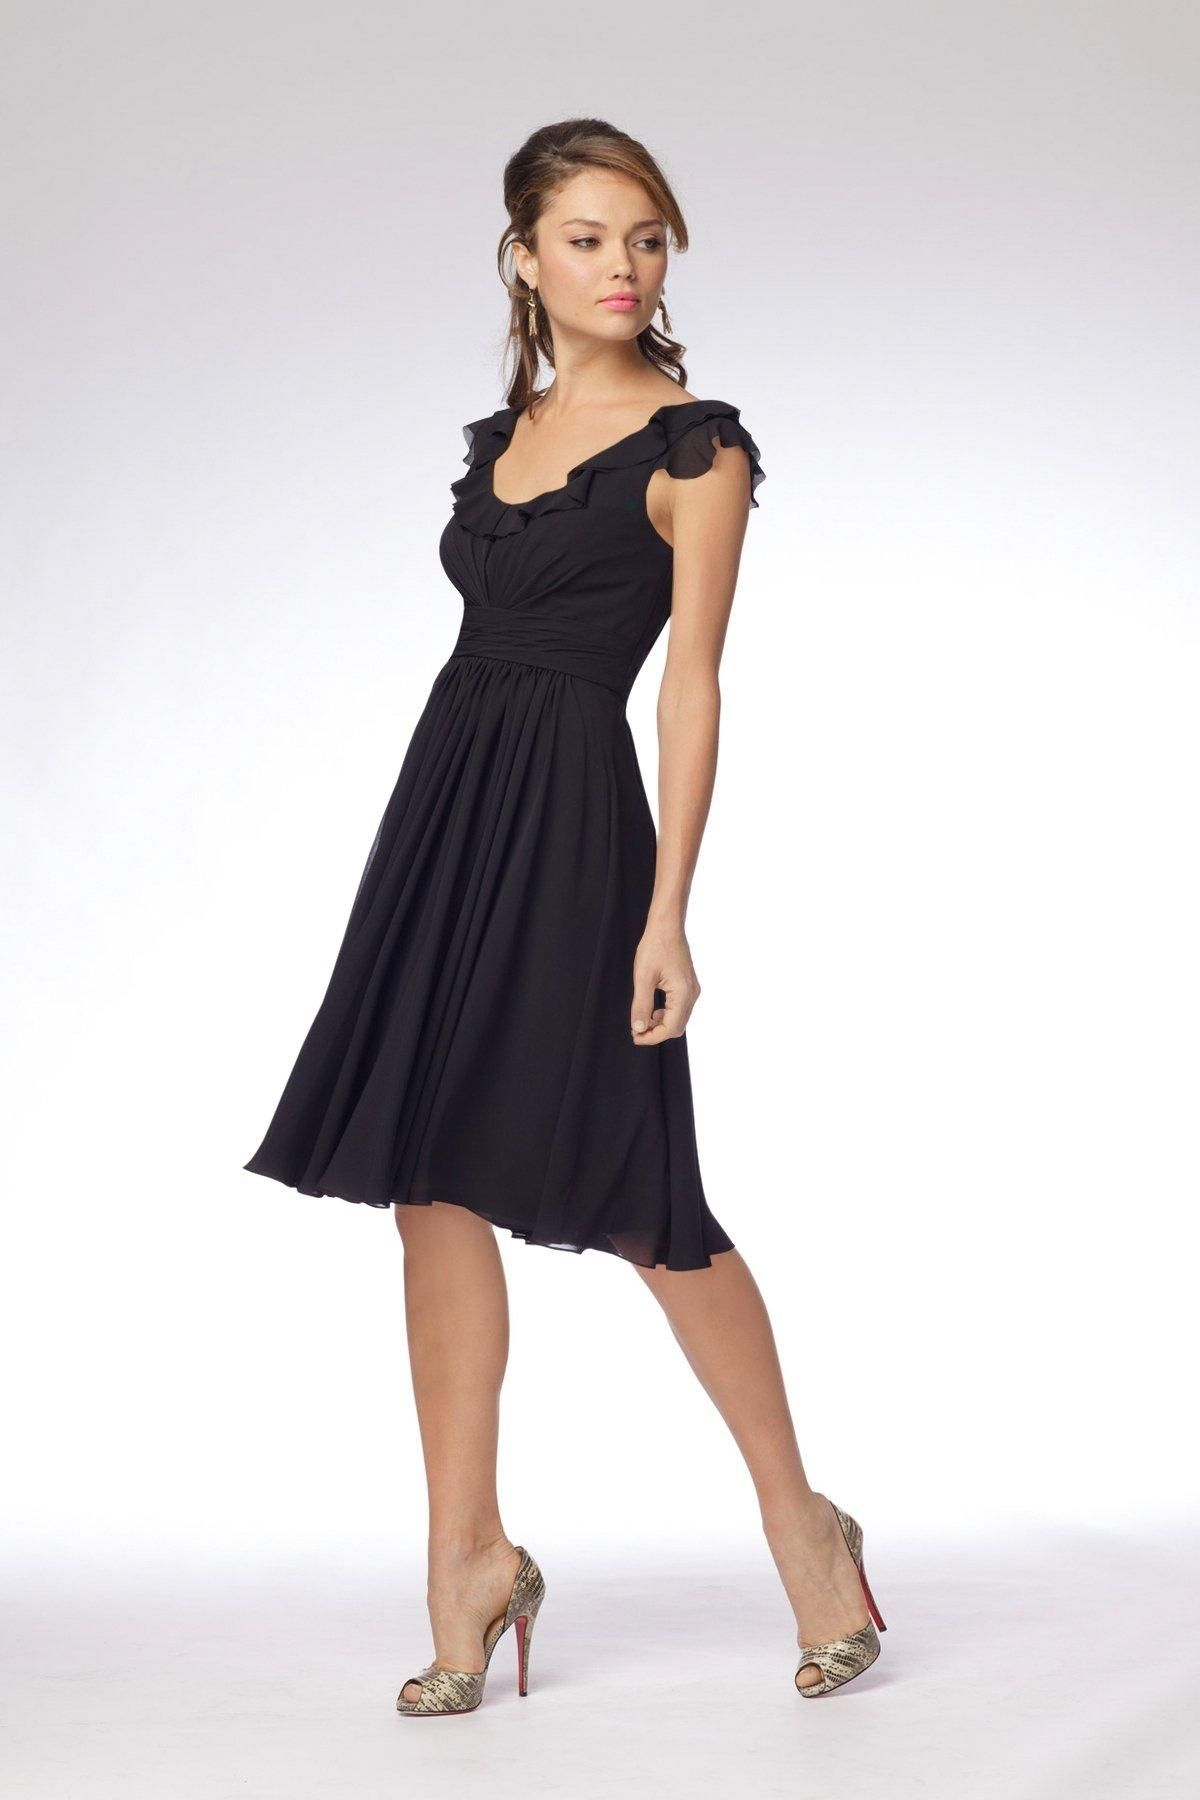 black knee length bridesmaid dresses - Top 100 Black bridesmaid ...